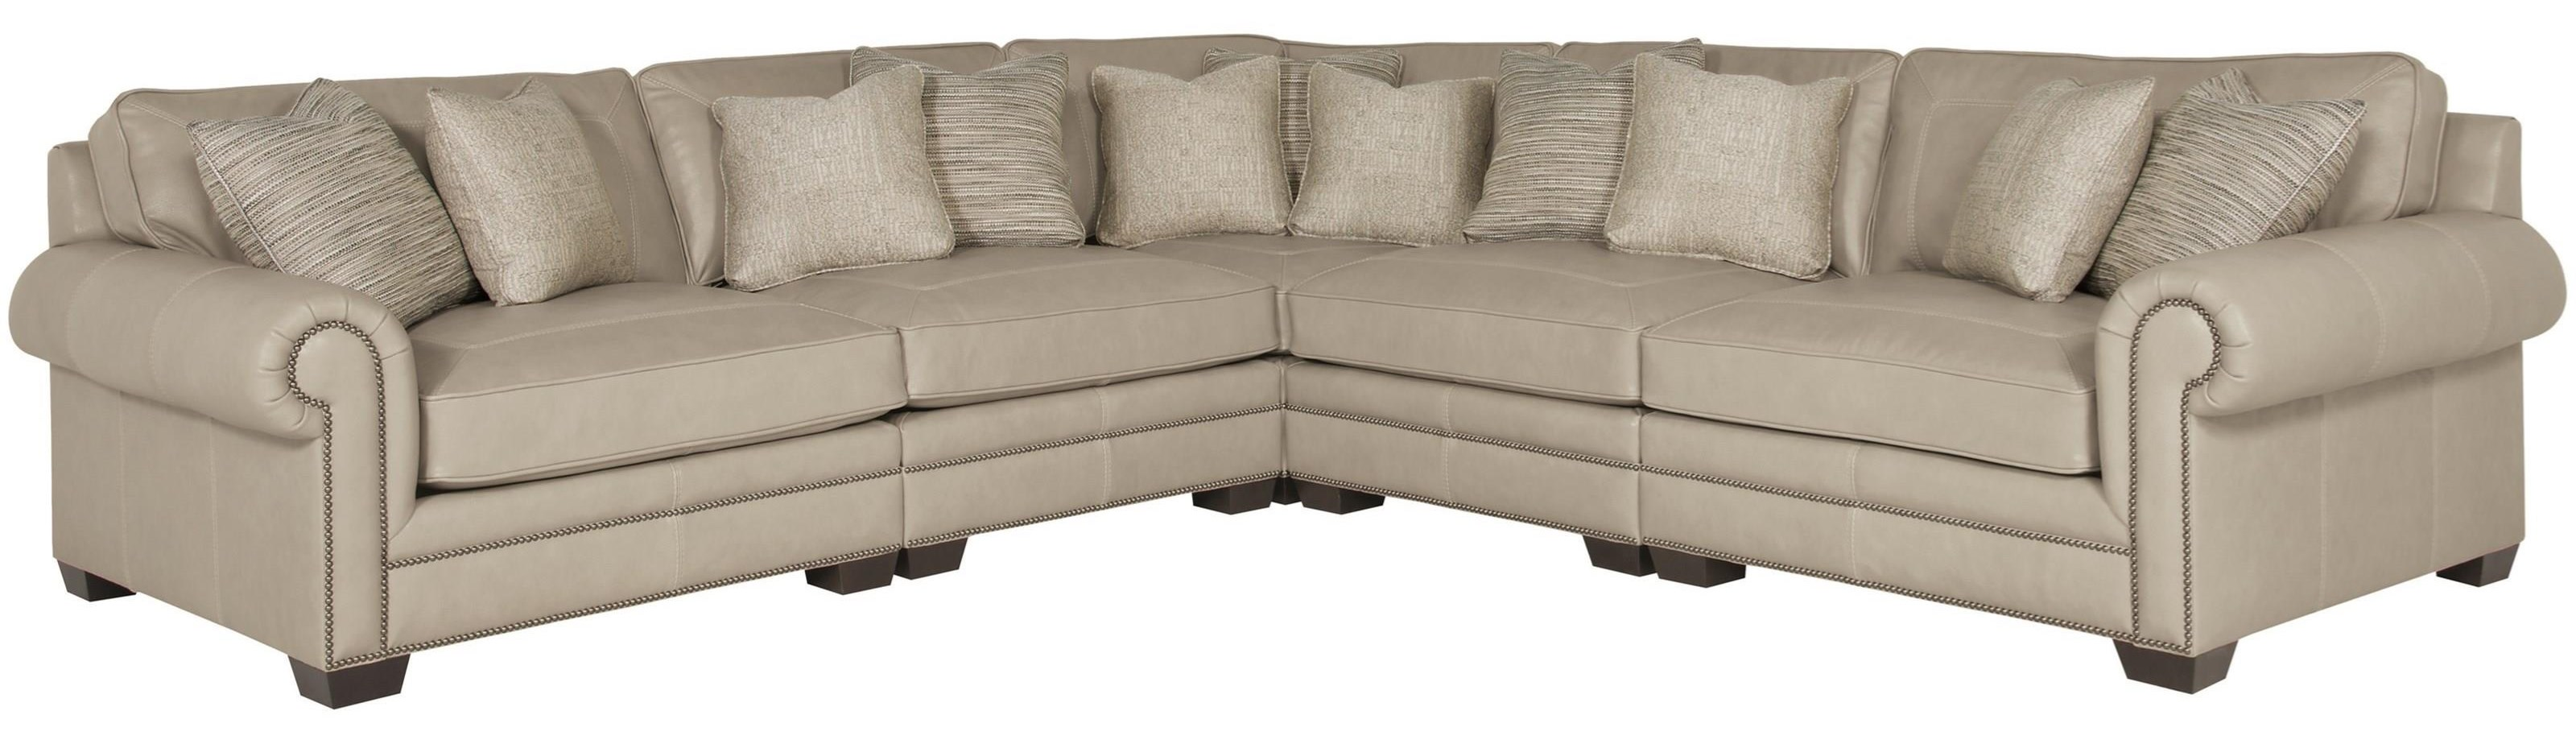 Grandview Traditional Sectional by Bernhardt at Baer's Furniture